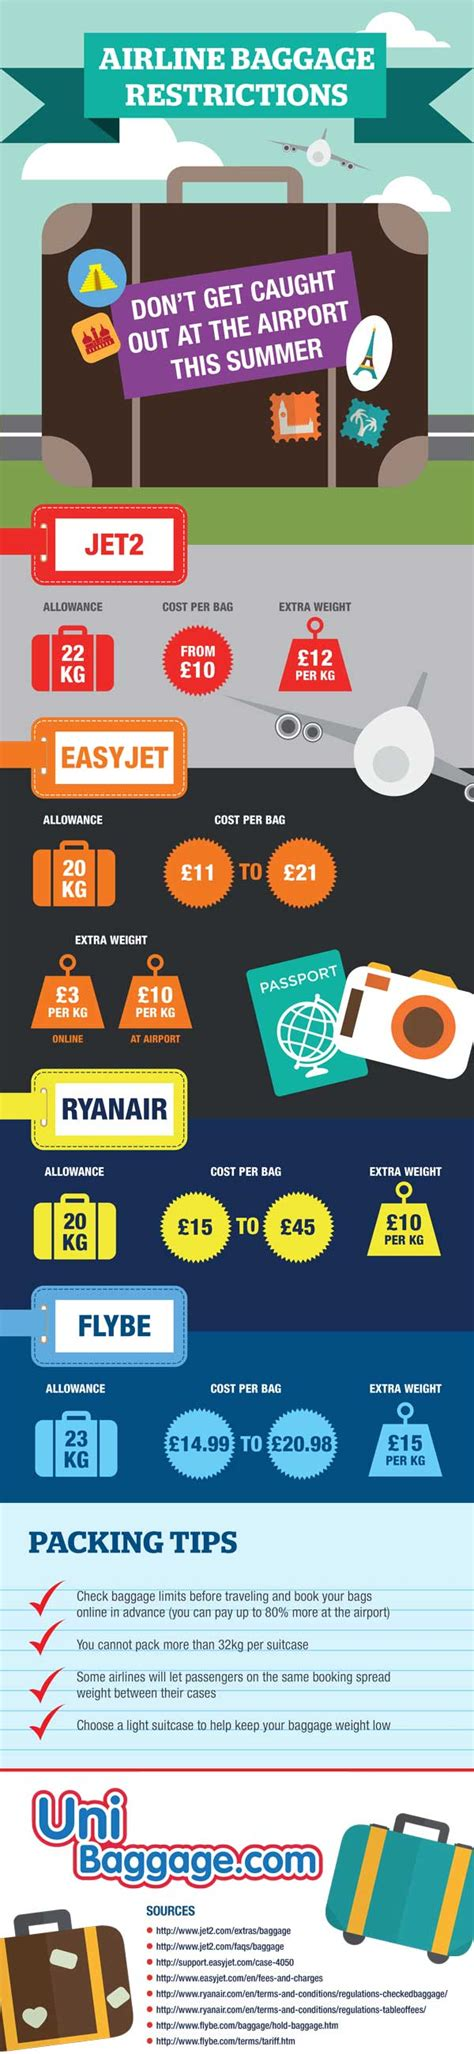 airline baggage limit gdl rules airline baggage allowance uni baggage uni baggage